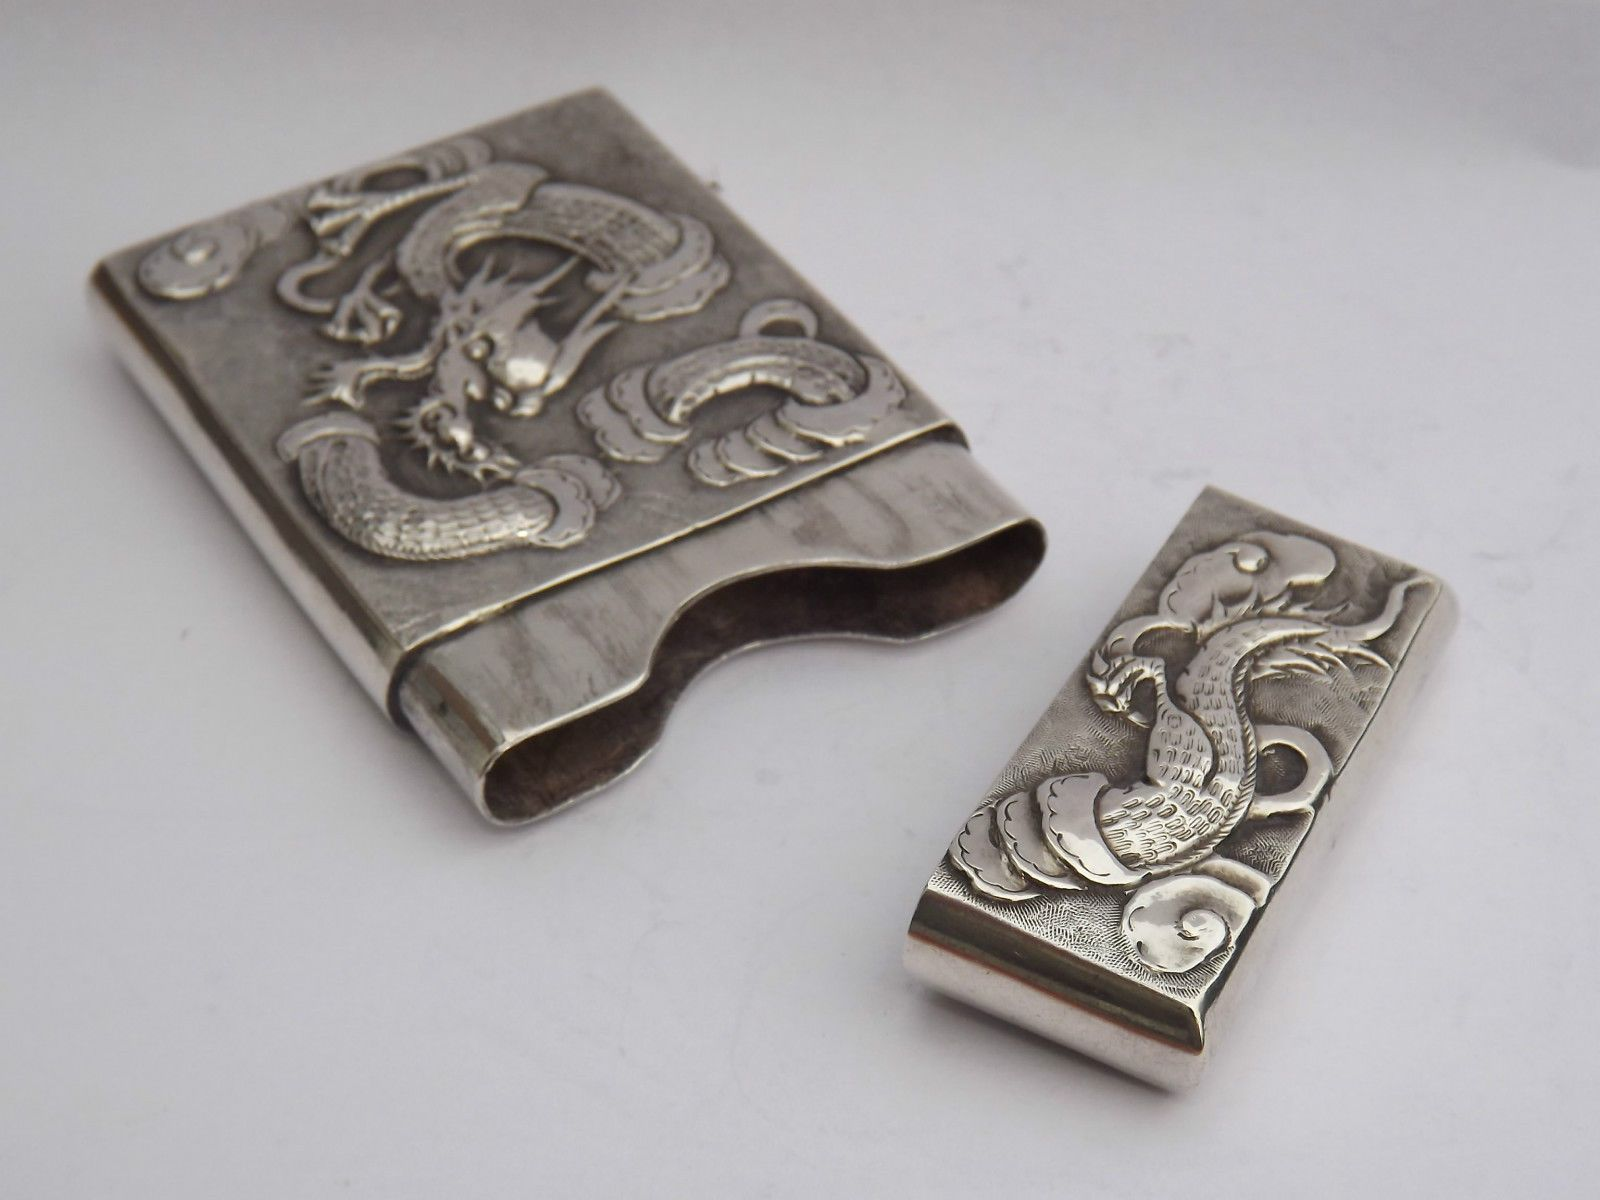 Splendid Good Quality Late 19th Early 20th Century Chinese Solid Silver Calling Card Case.